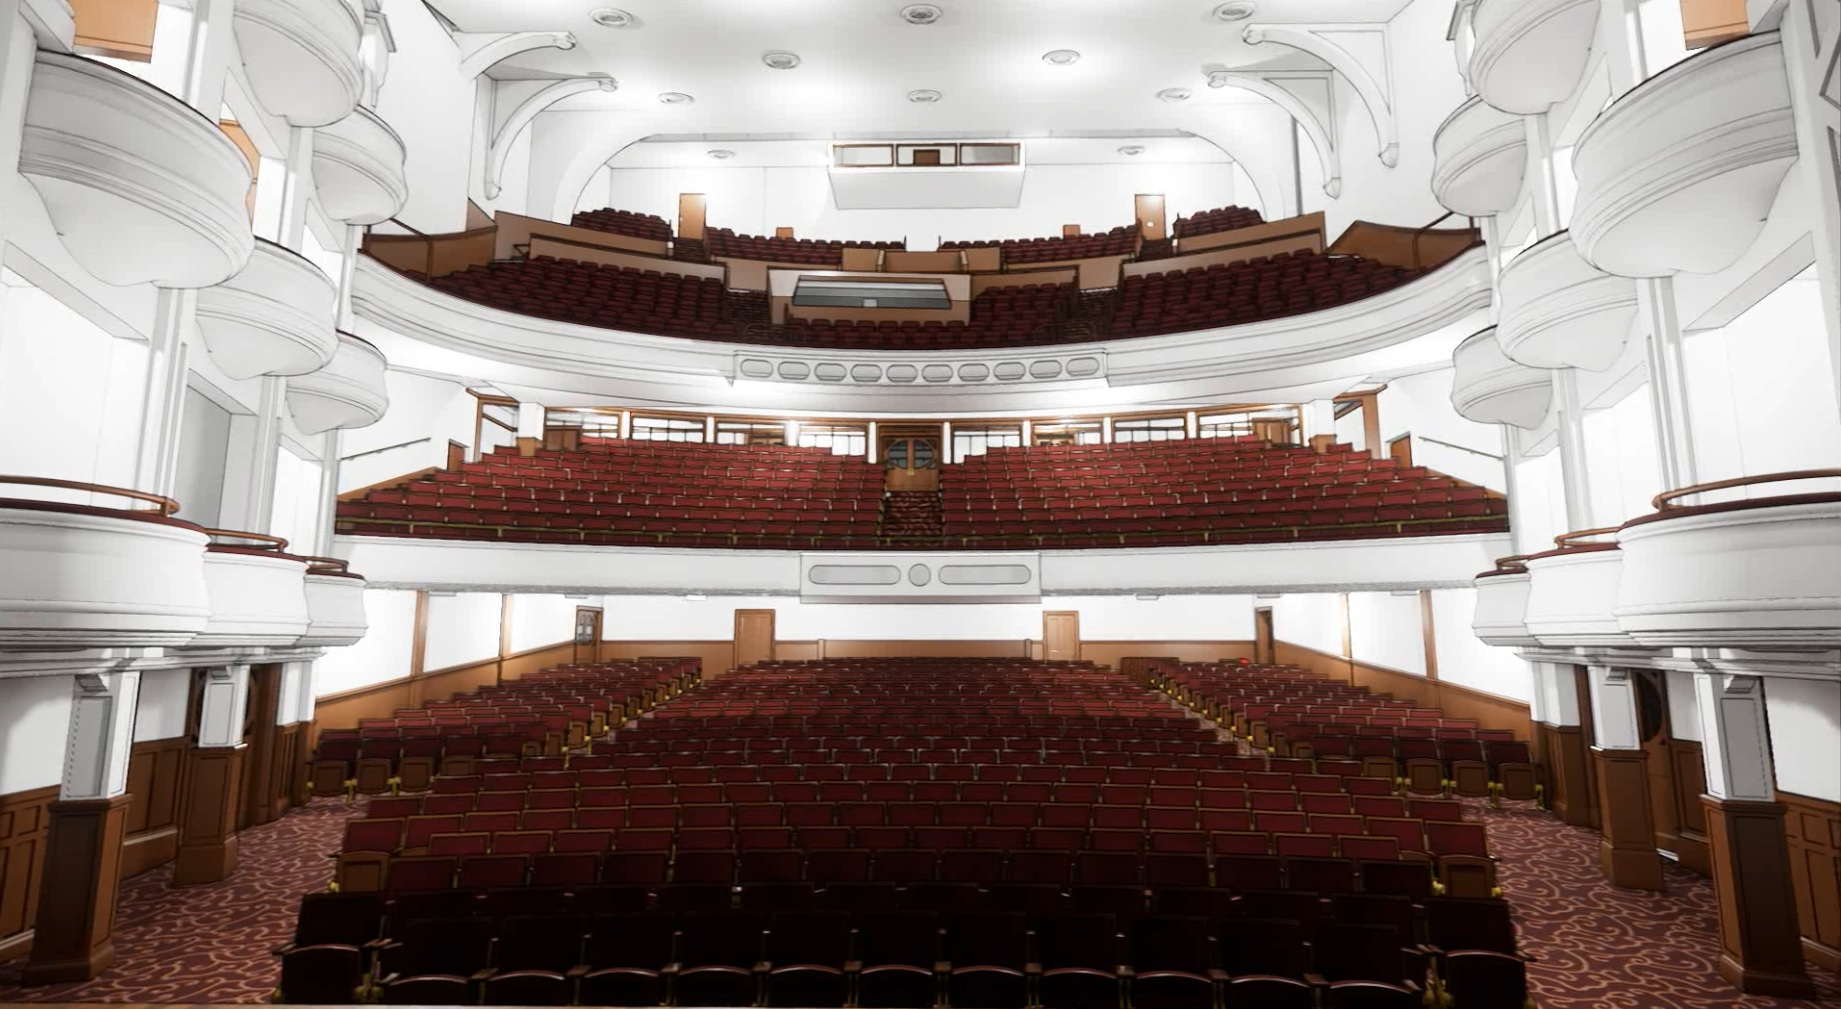 3D model - Auditorium